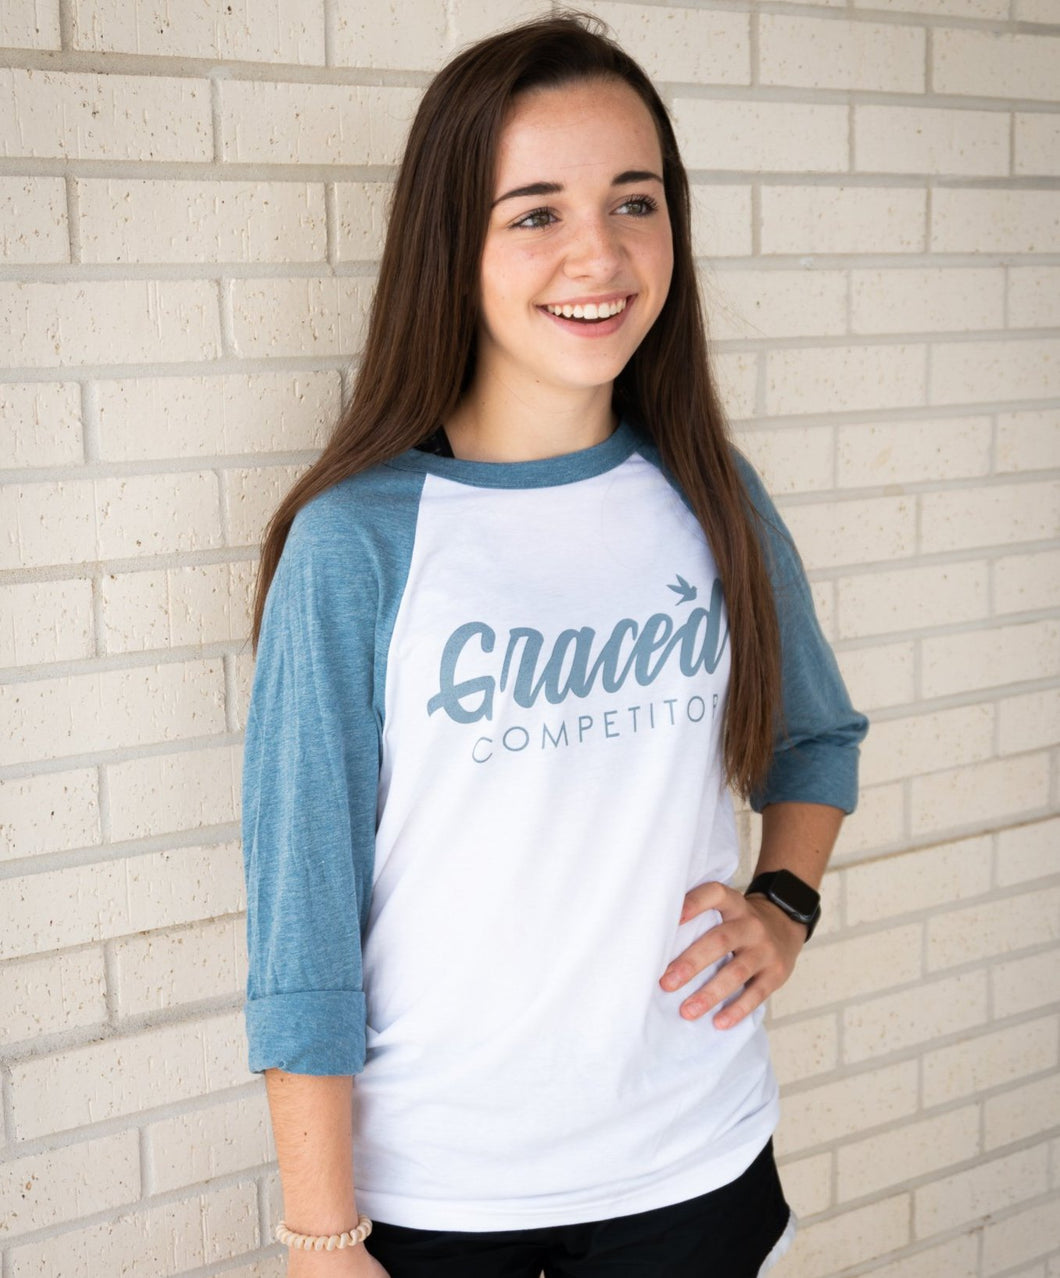 Classic Graced Competitor Baseball Tee